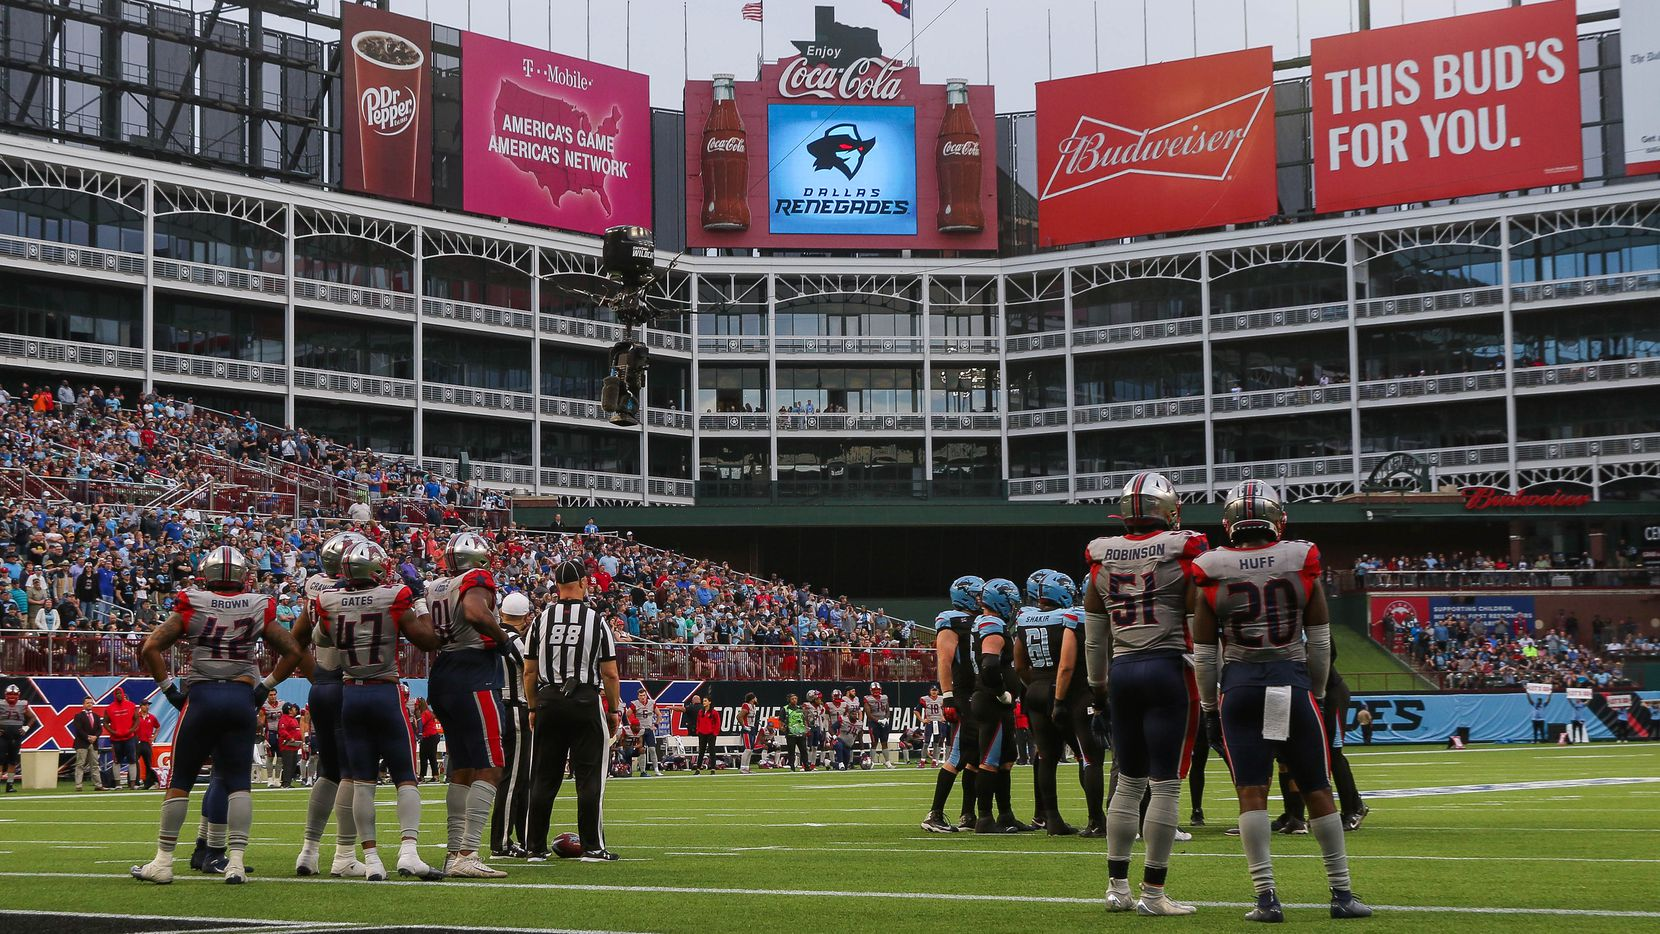 The second half of an XFL football game between the  Dallas Renegades and the Houston Roughnecks at Globe Life Park on Sunday, March 1, 2020 in Arlington. The Renegades lost 20 to 27.